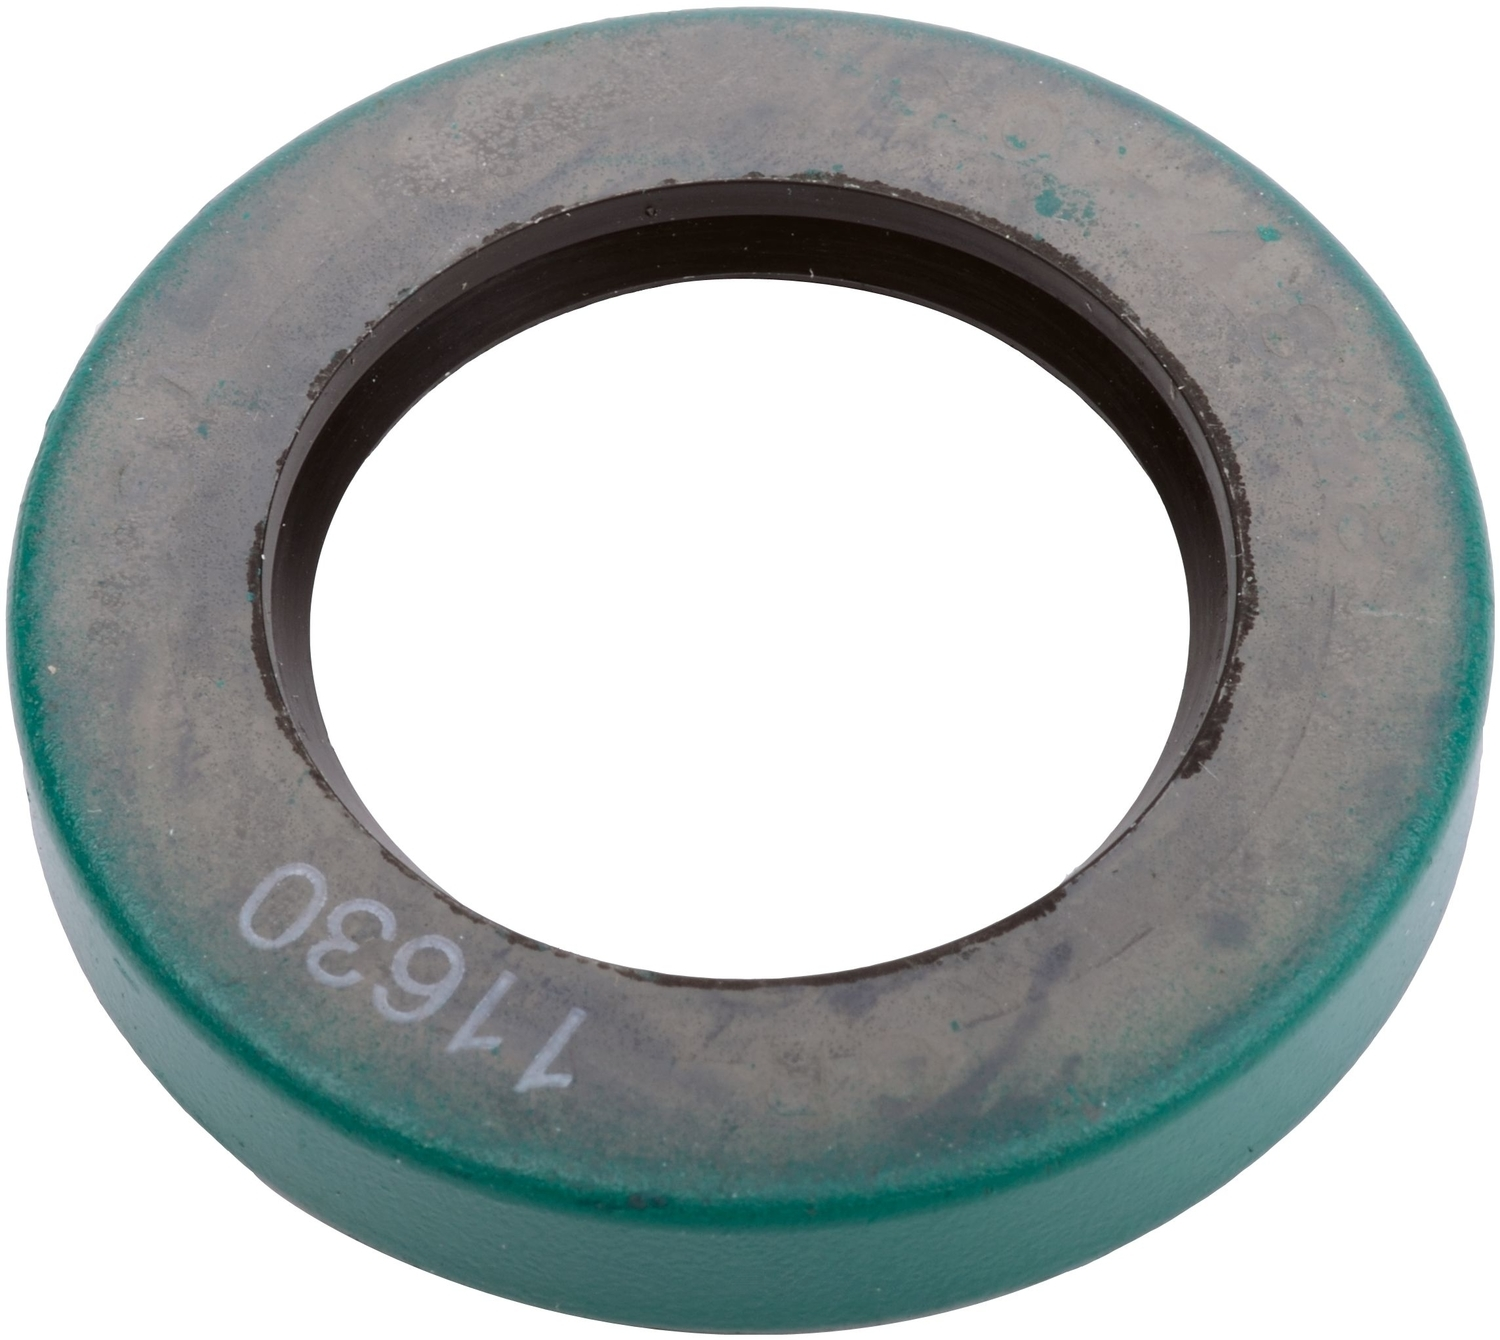 SKF (CHICAGO RAWHIDE) - Front Seal - SKF 11630